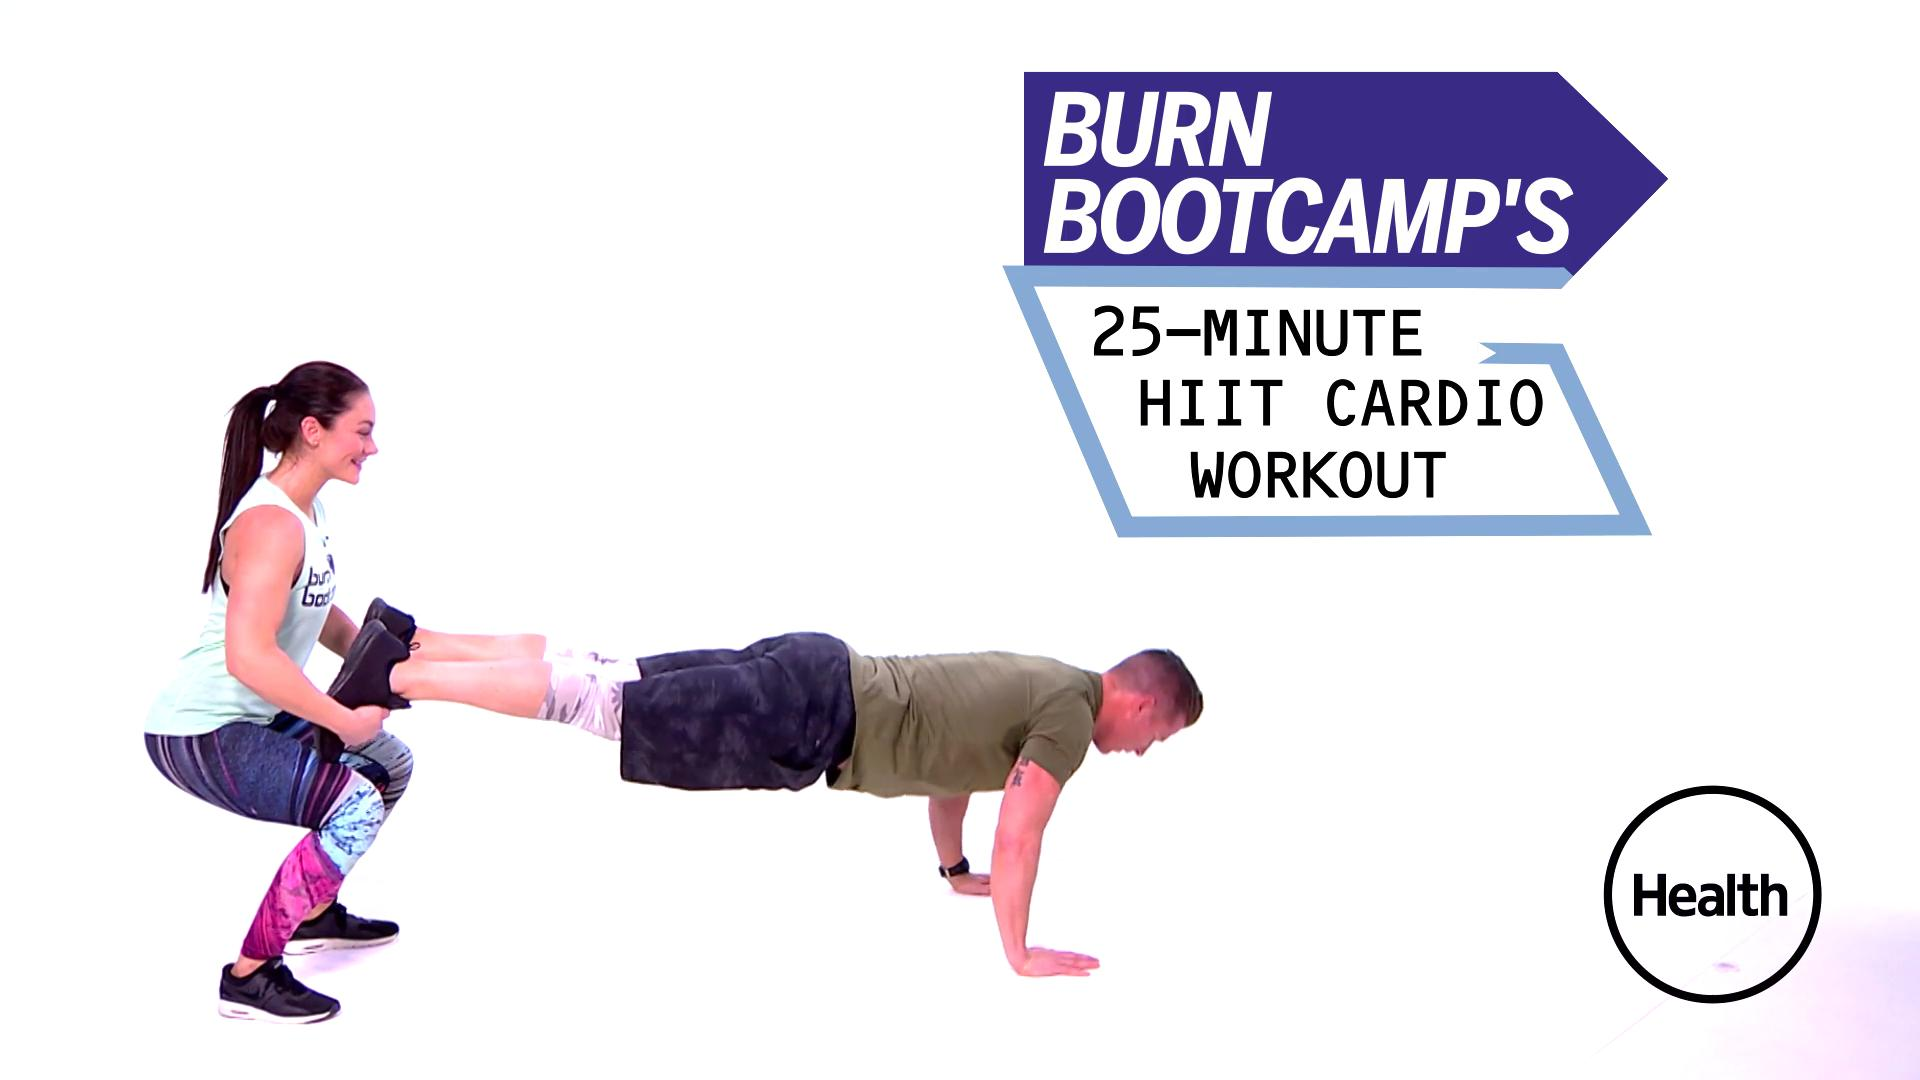 all you need is a mat and 25 minutes to complete this total body